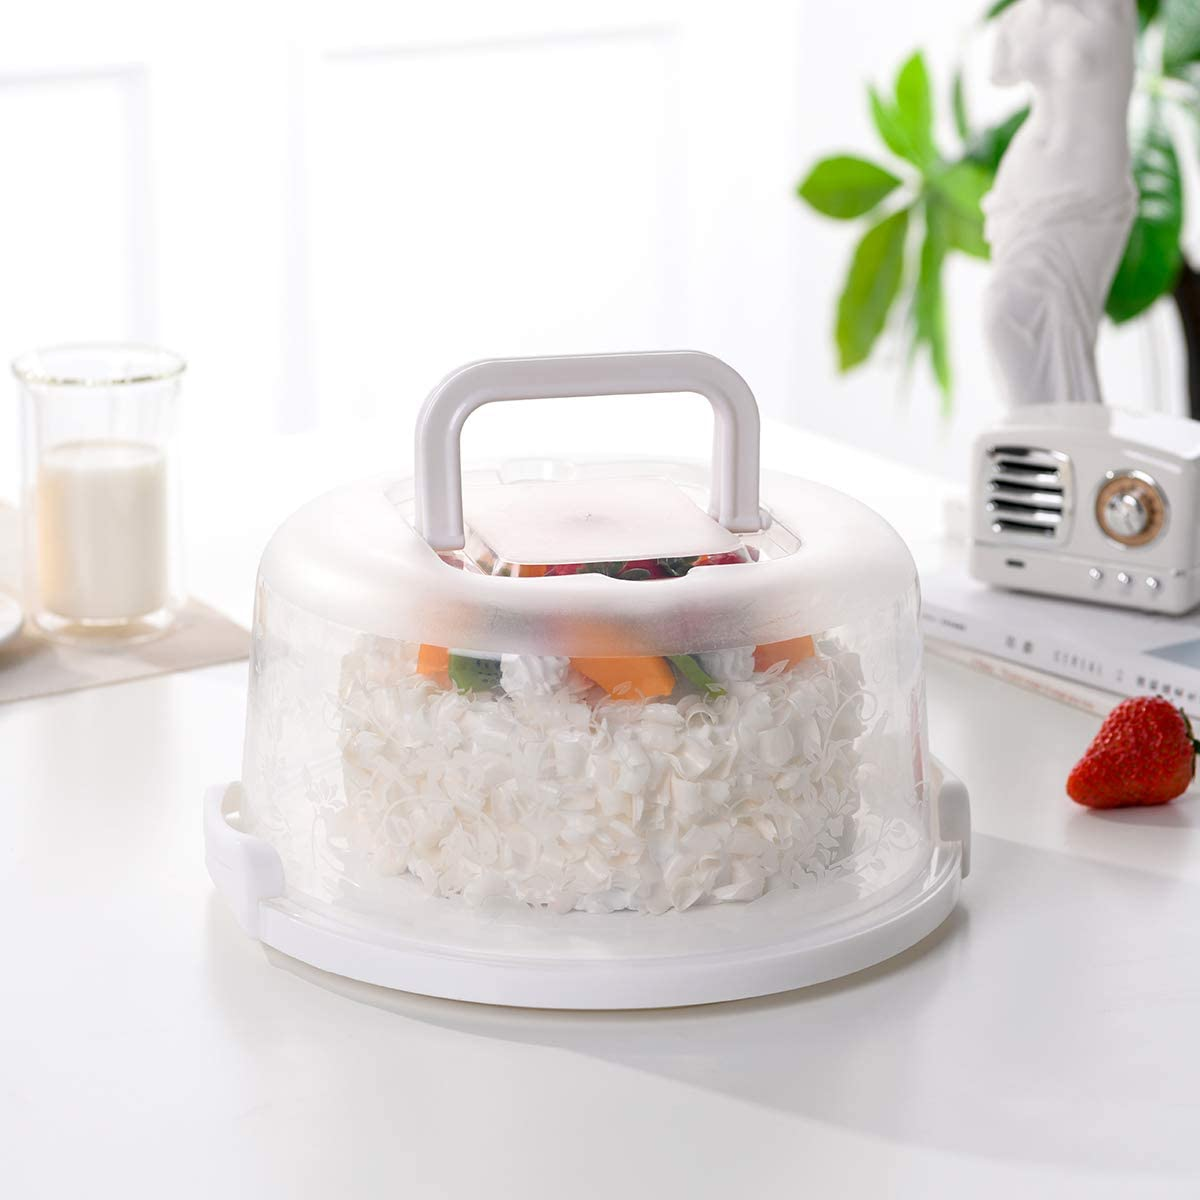 White Plastic Cake Stand with Collapsible Handle Small Cake Carrier Cake Container for 6 inch Cake or Less